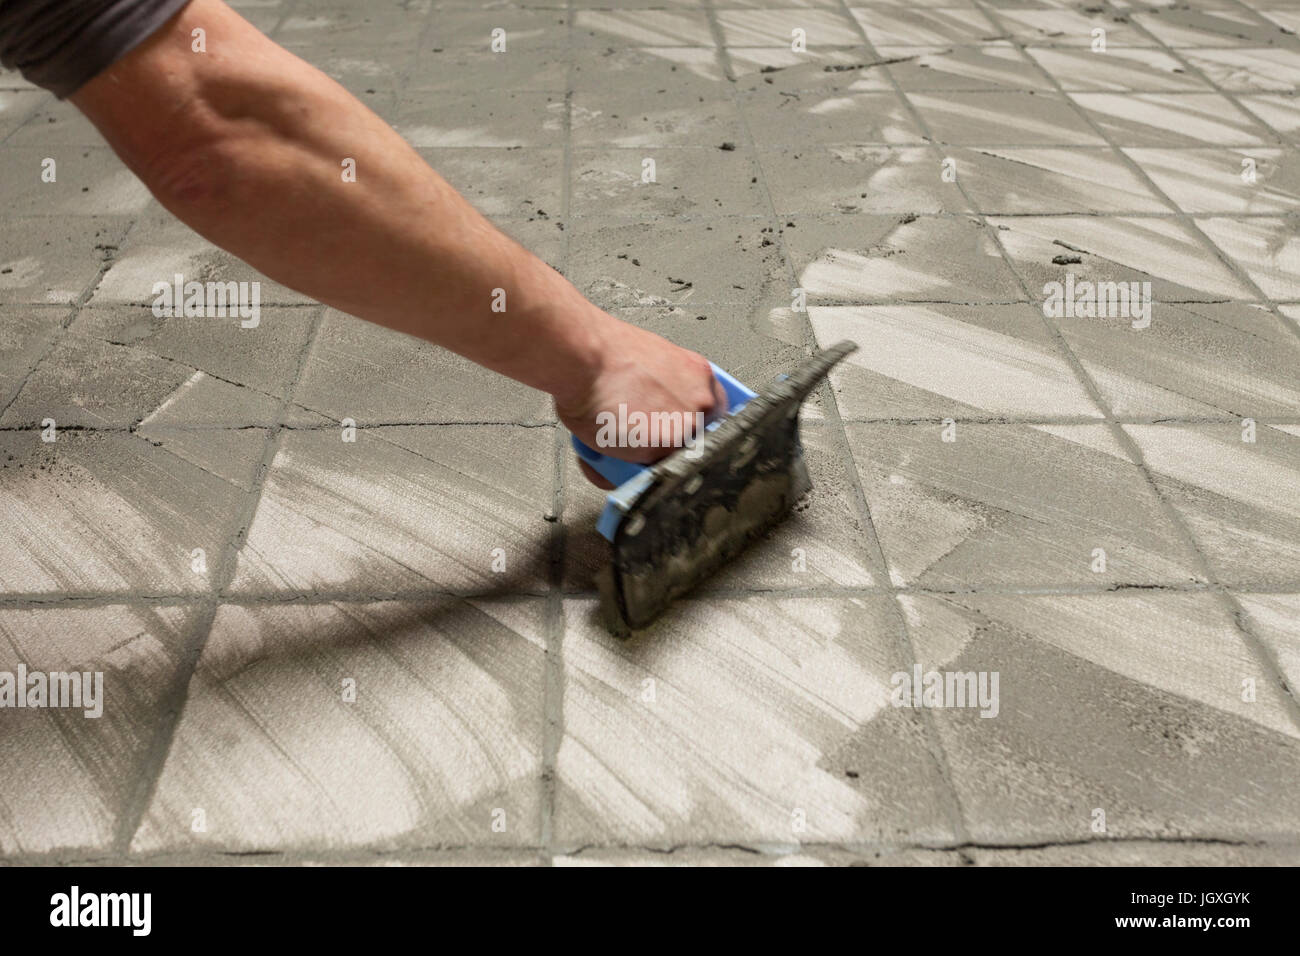 Masterfully Gluing Ceramic Tiles In An Industrial Room Stock Photo